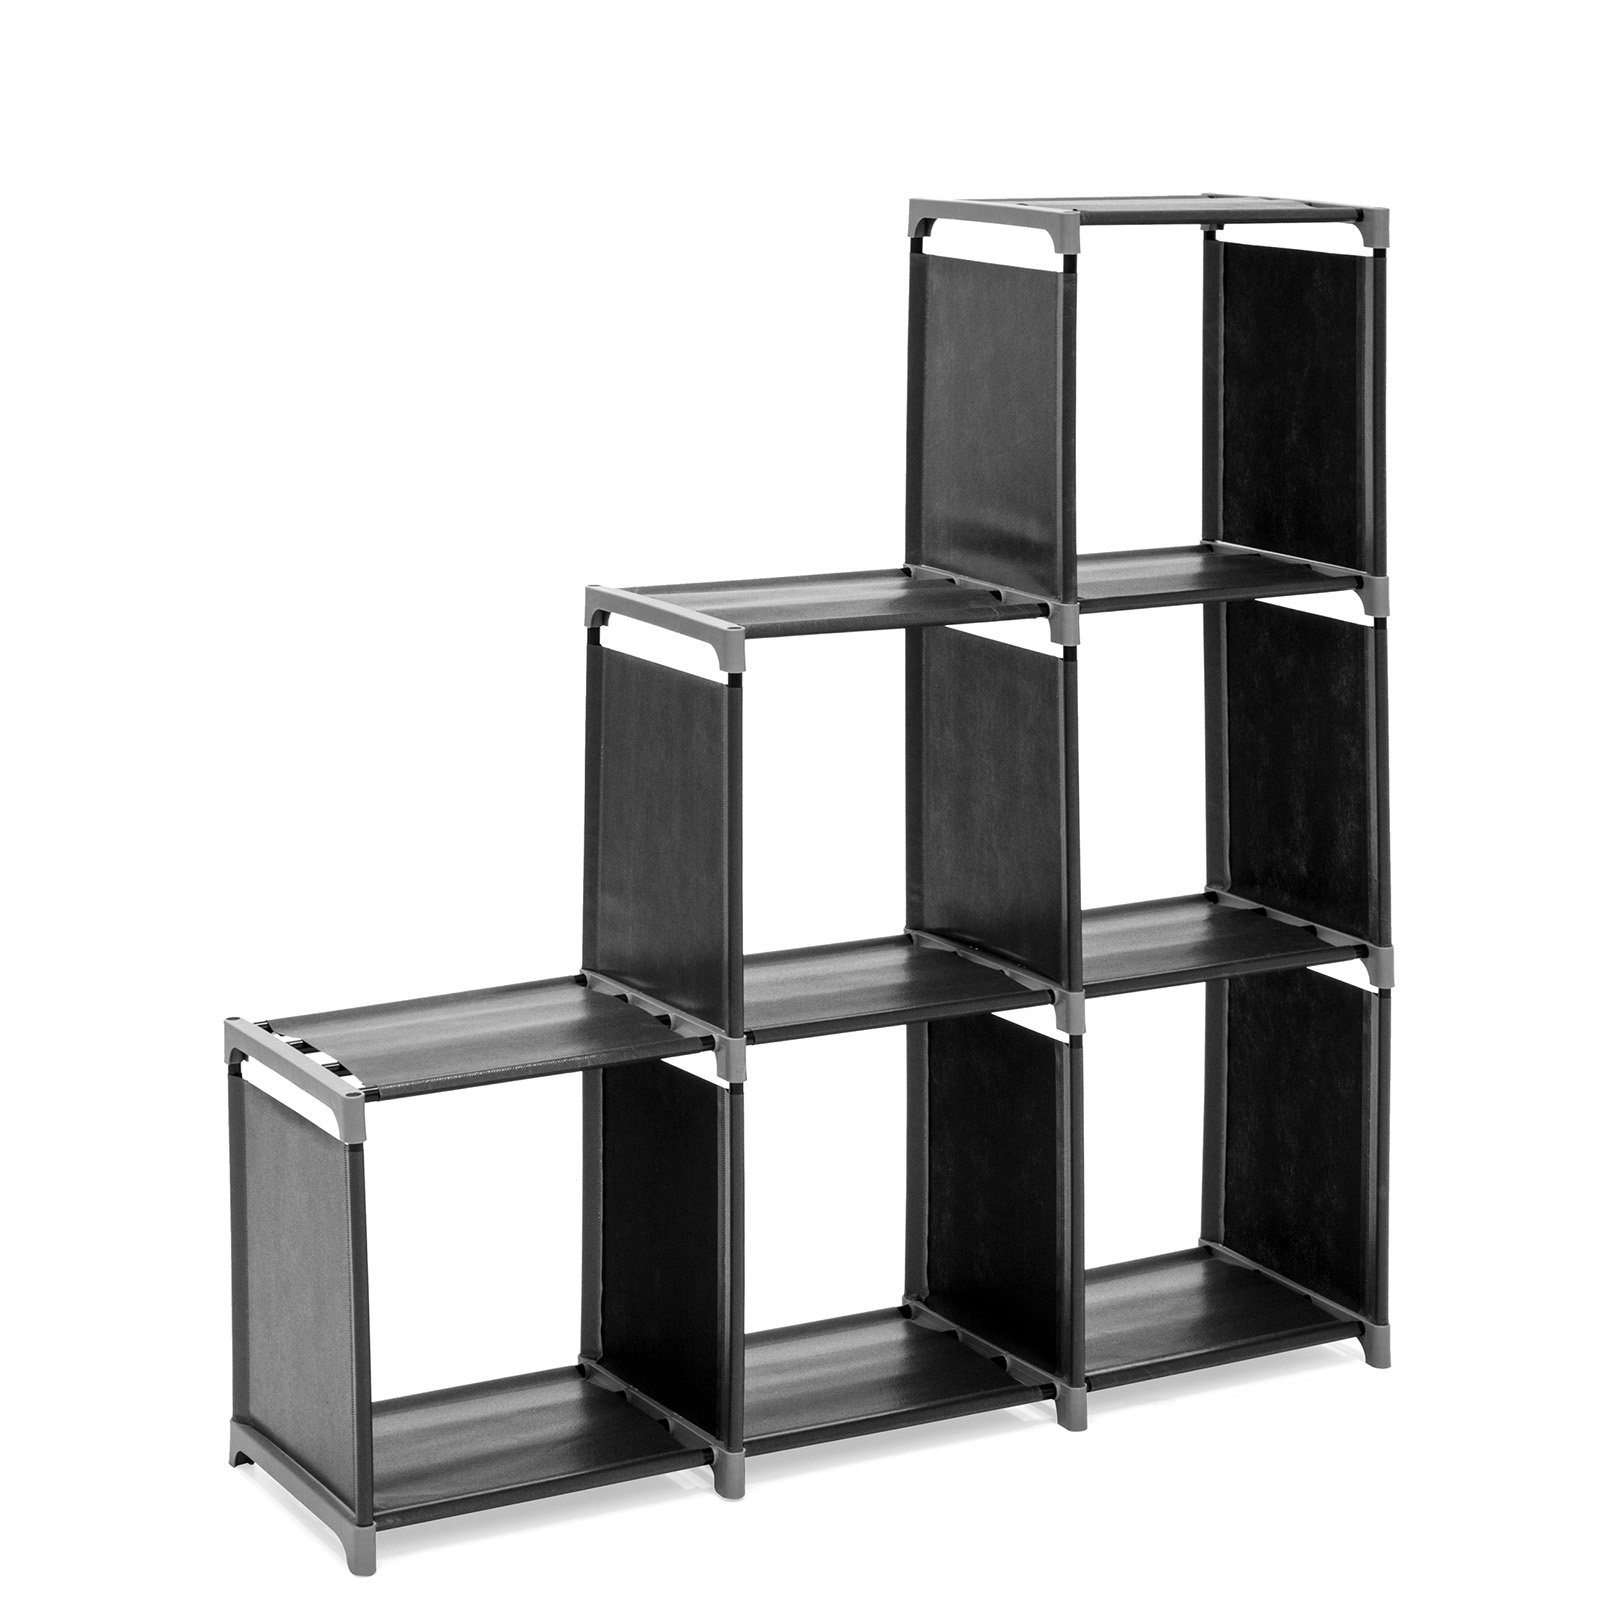 Best Choice Products 6-Drawer Multi-Purpose Shelving Cubby Storage Cabinet (Black) by Best Choice Products (Image #8)